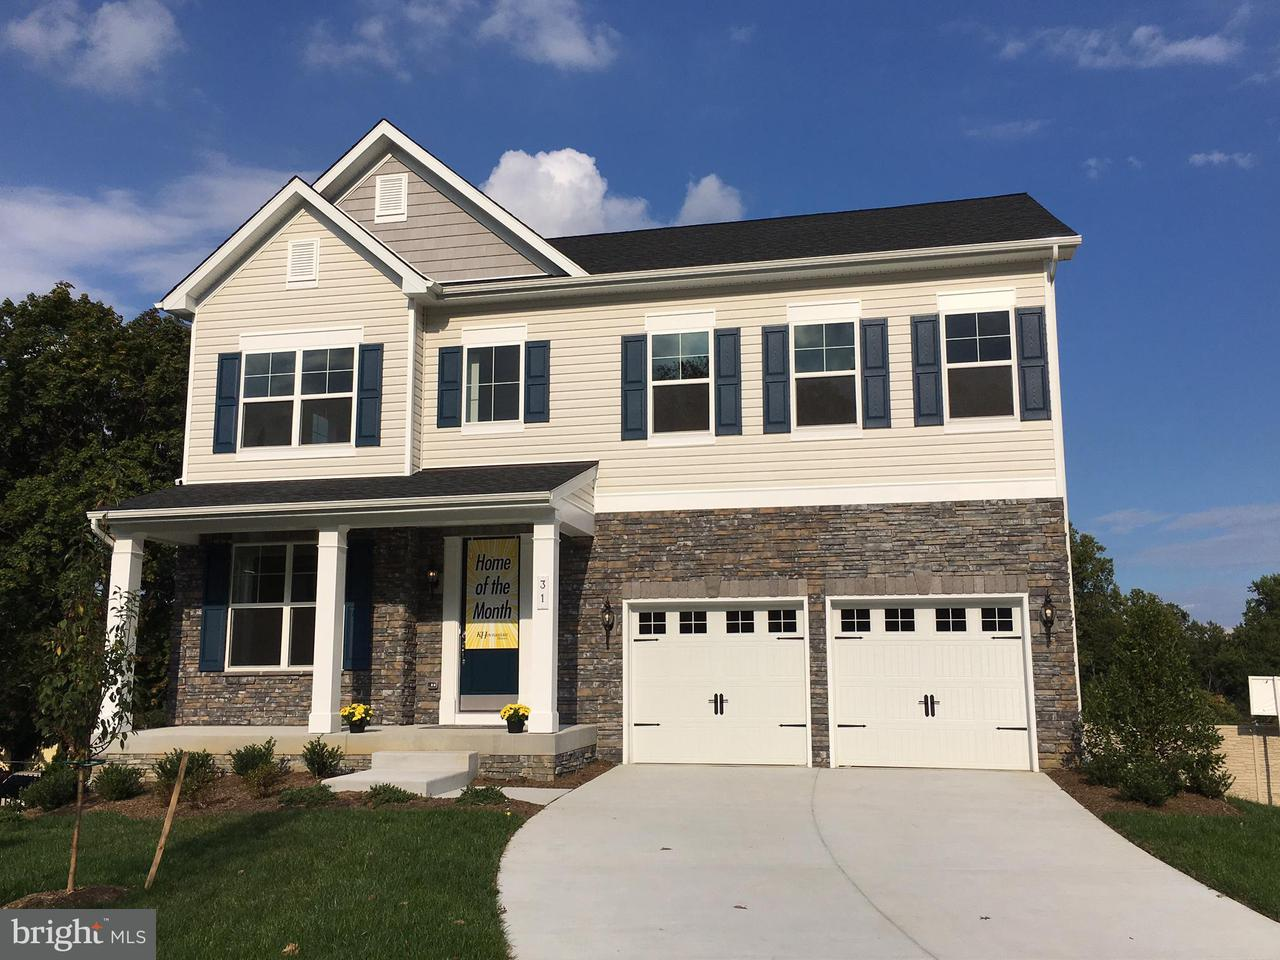 Single Family Home for Sale at 31 EDEN TERRACE Lane 31 EDEN TERRACE Lane Catonsville, Maryland 21228 United States